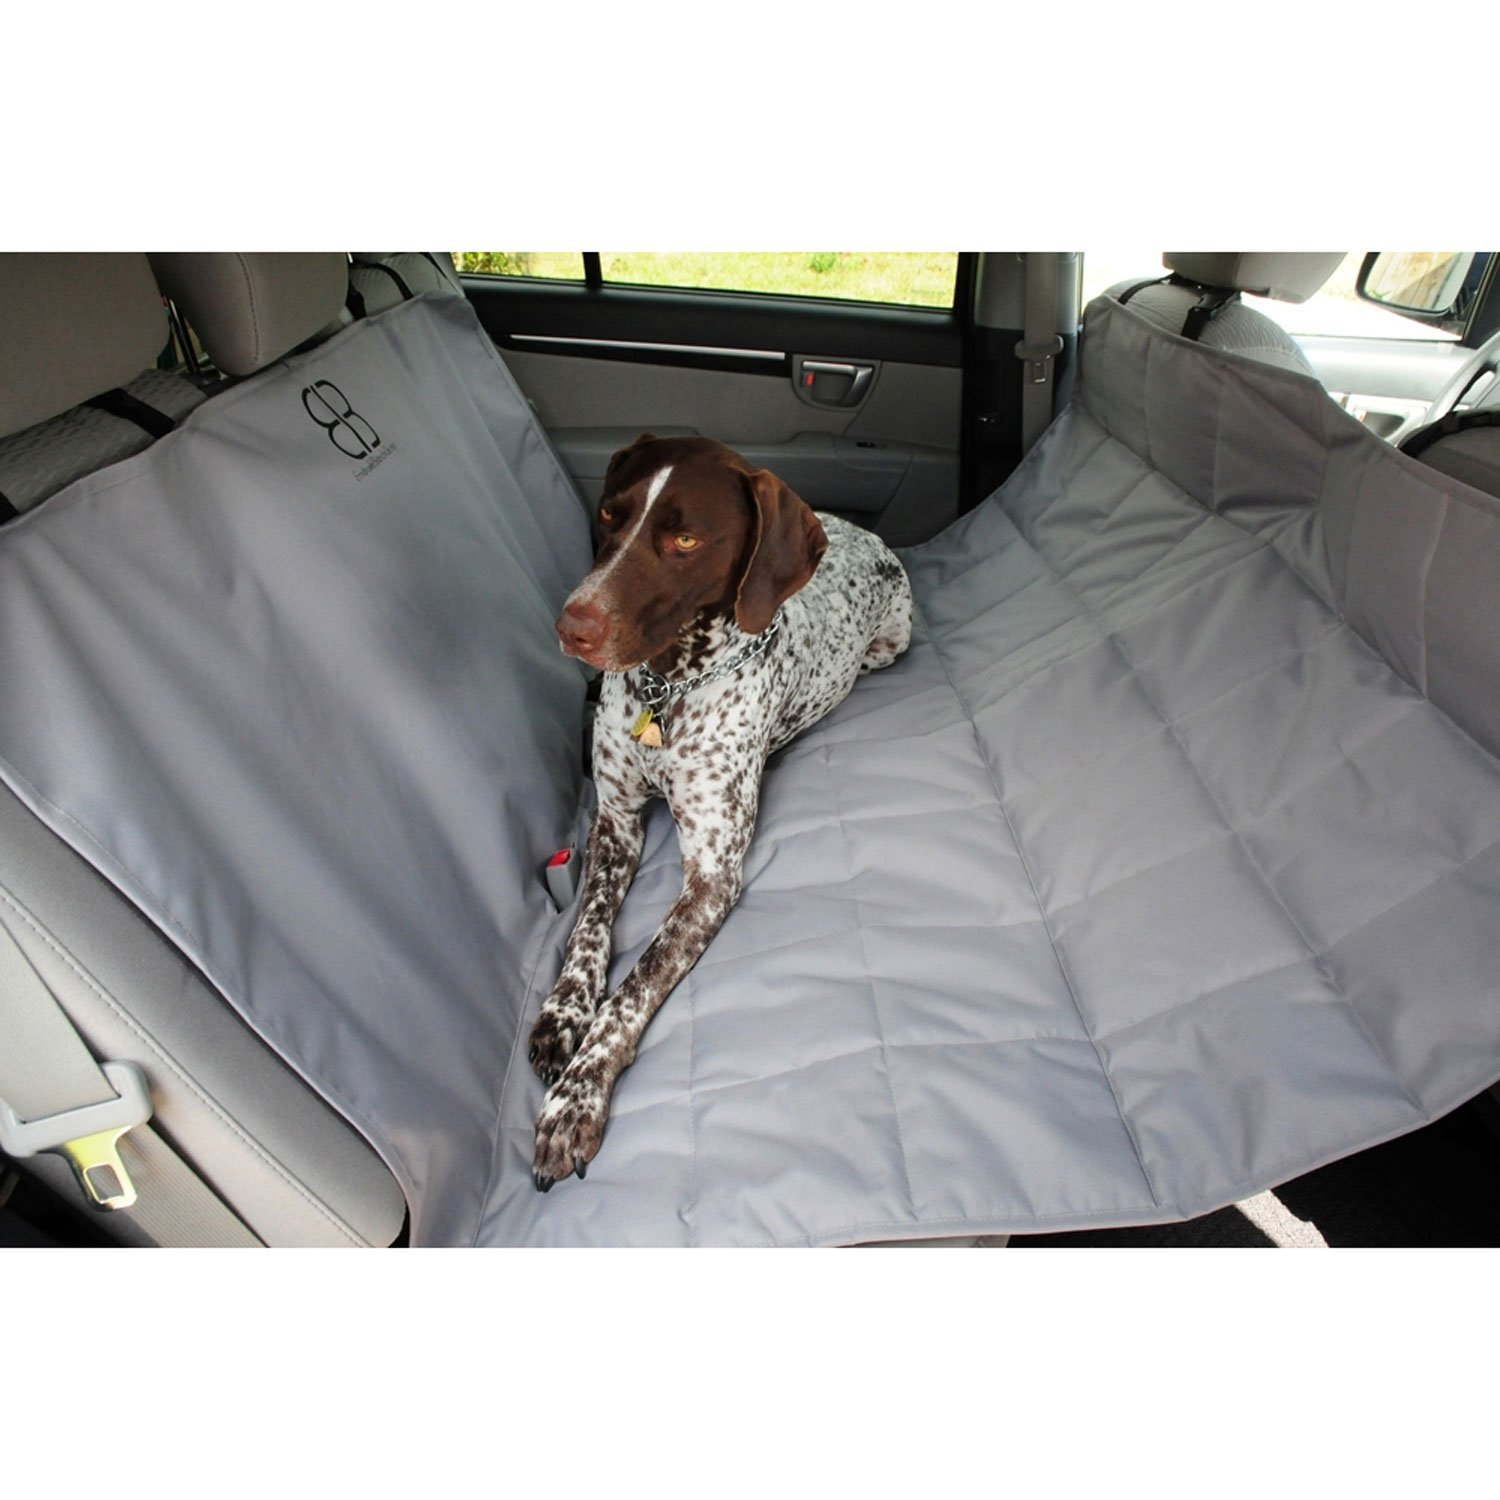 Motor Trend by Petego Hammock Car Seat Protector for Pets, Gray, X-Large